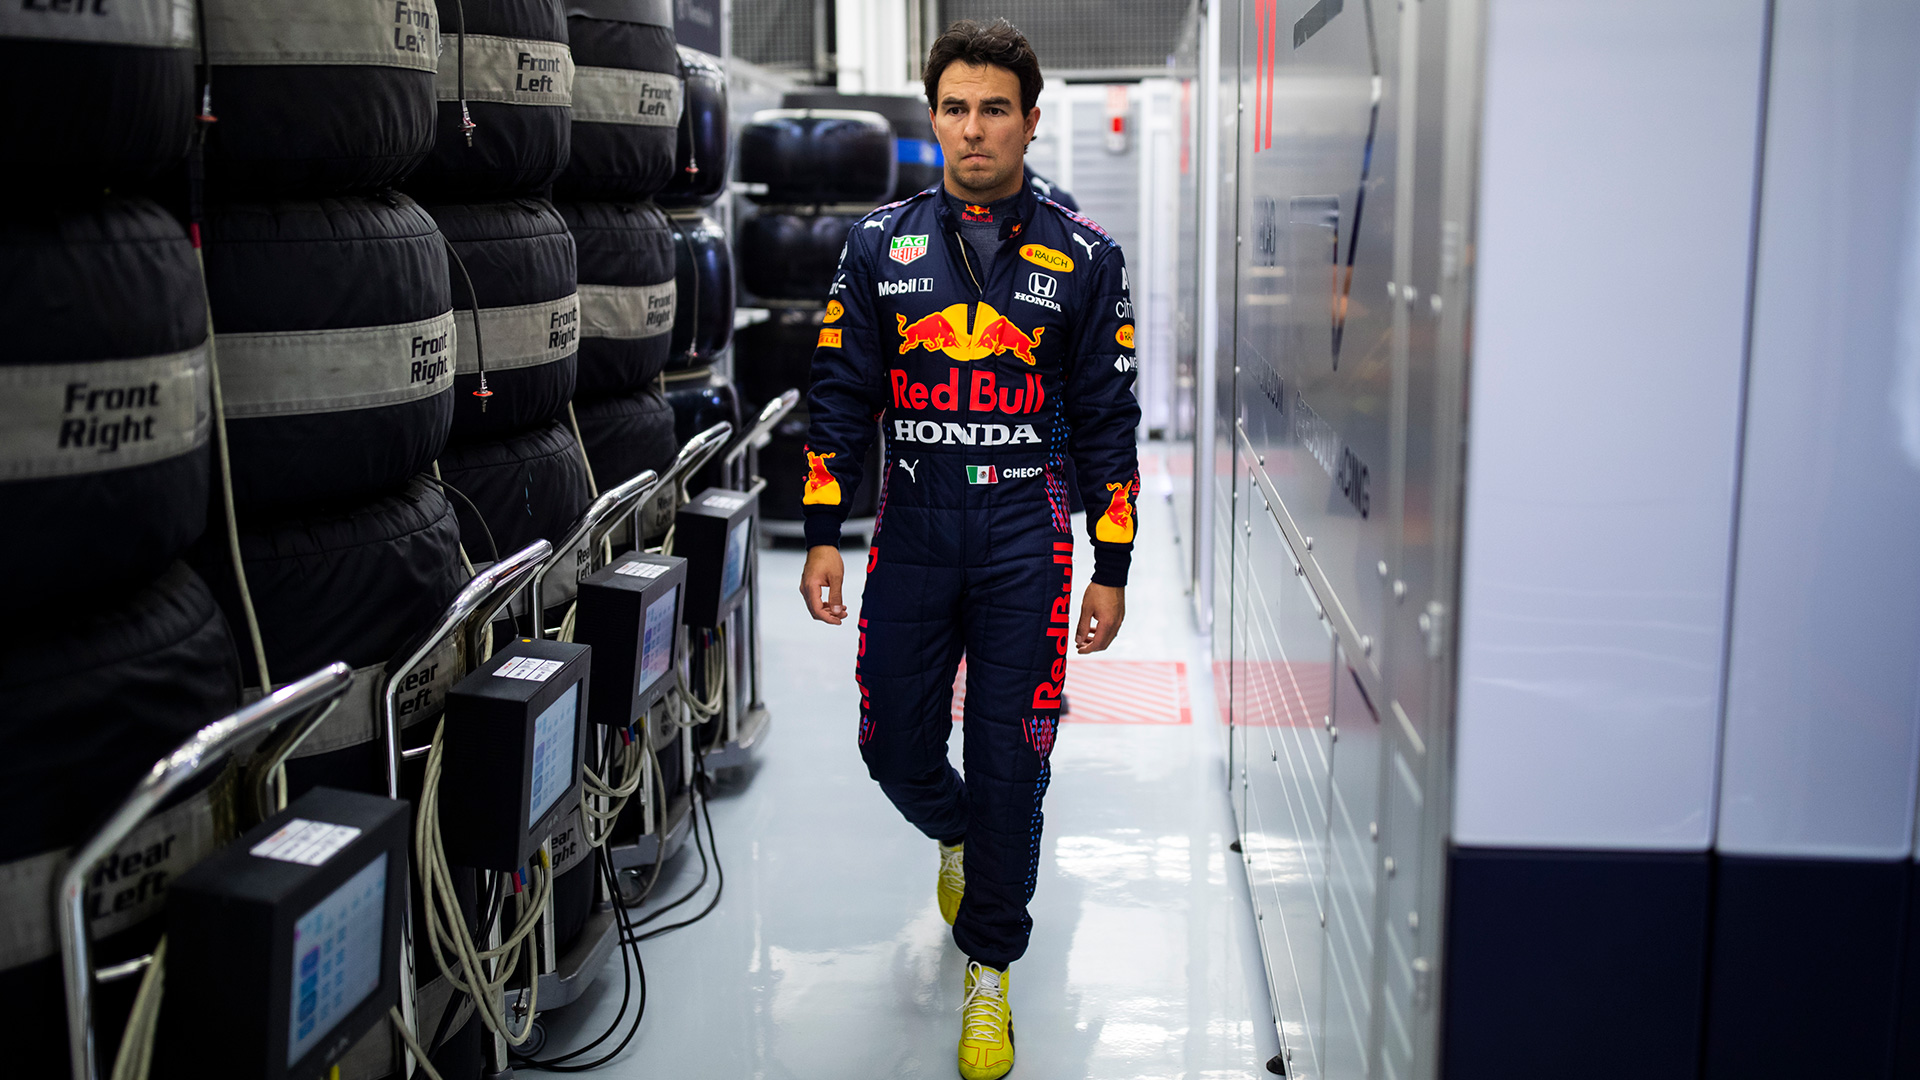 LIVE COVERAGE - First Practice in Bahrain | Formula 1®